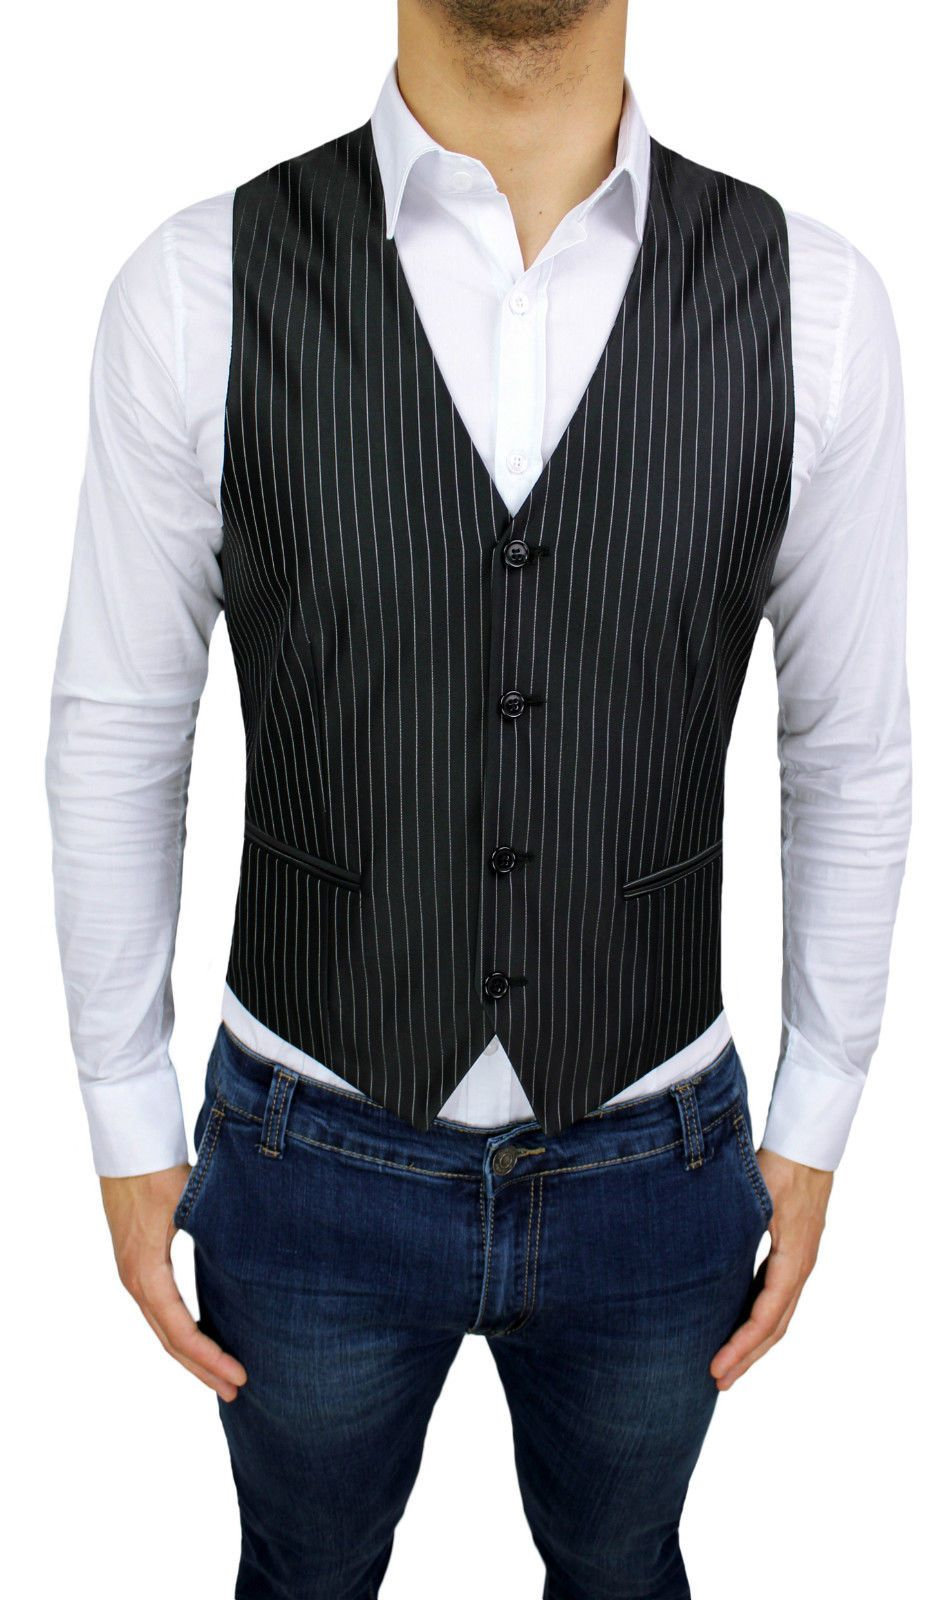 Vest Man Diamond Black Pinstriped Sleeveless Waistcoat Striped New Cotton Ebay Mens Vest Waistcoat Vest